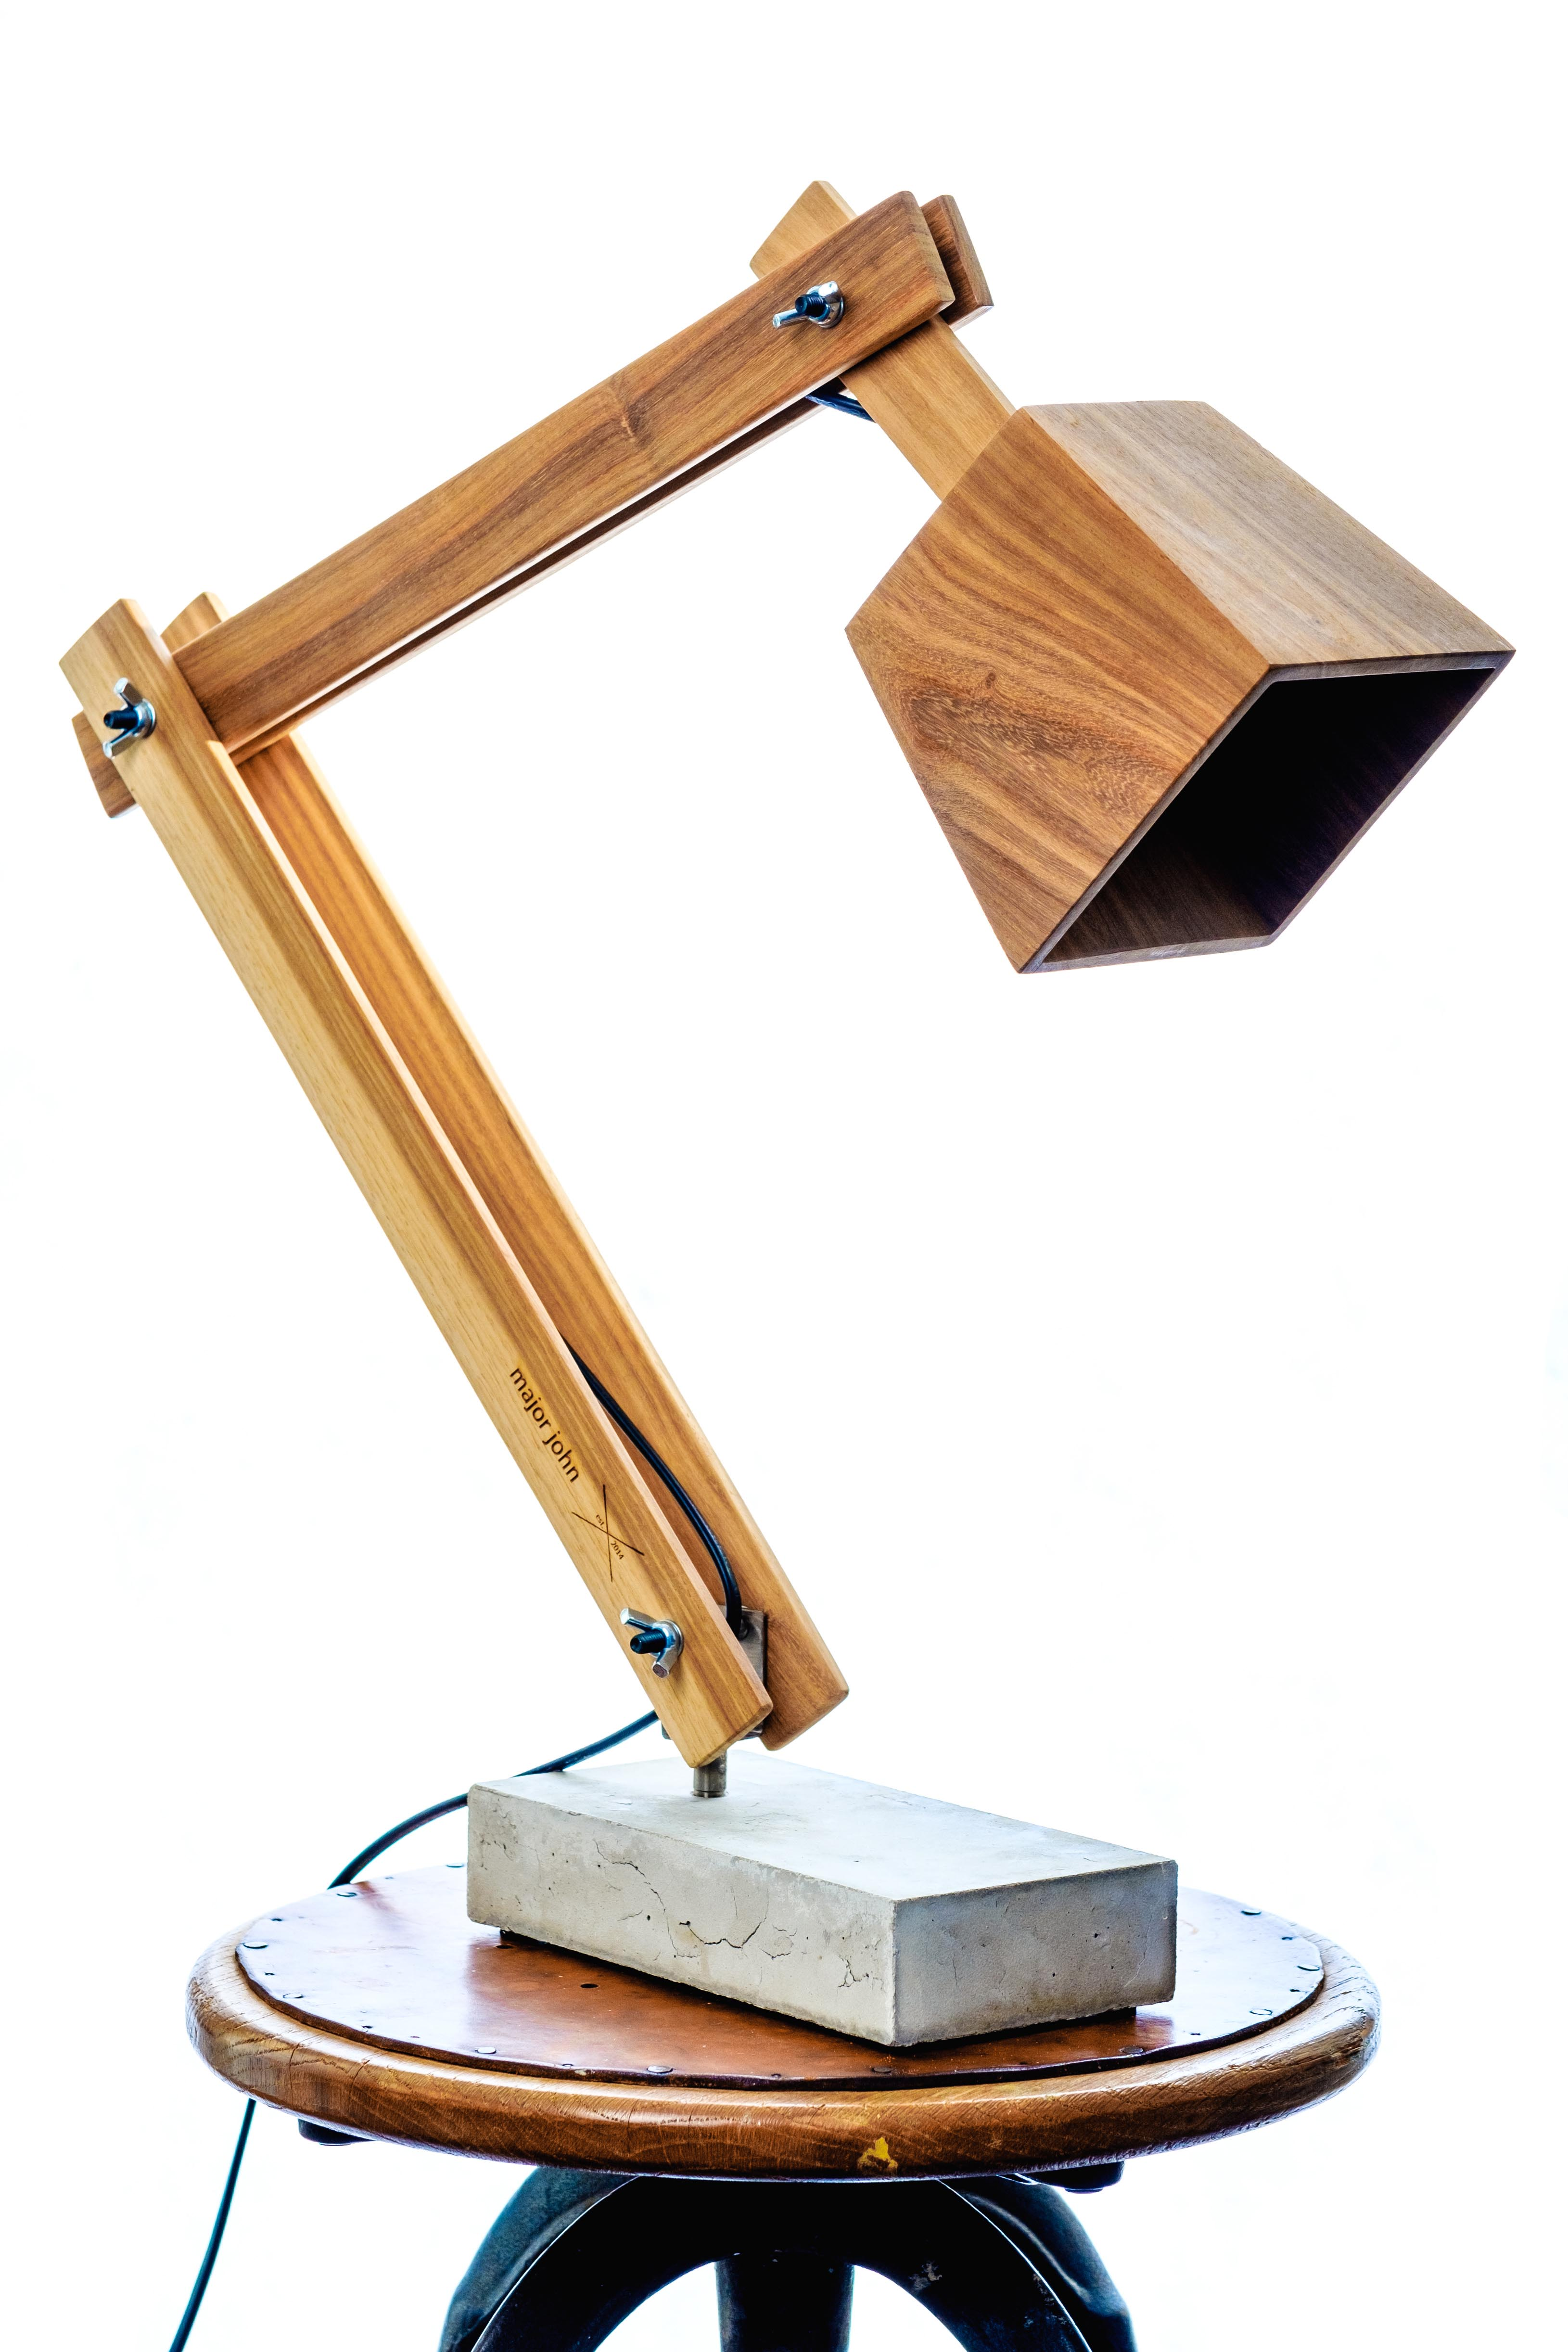 The Desk lamp is made from Namibian Teak timber or American Walnut.